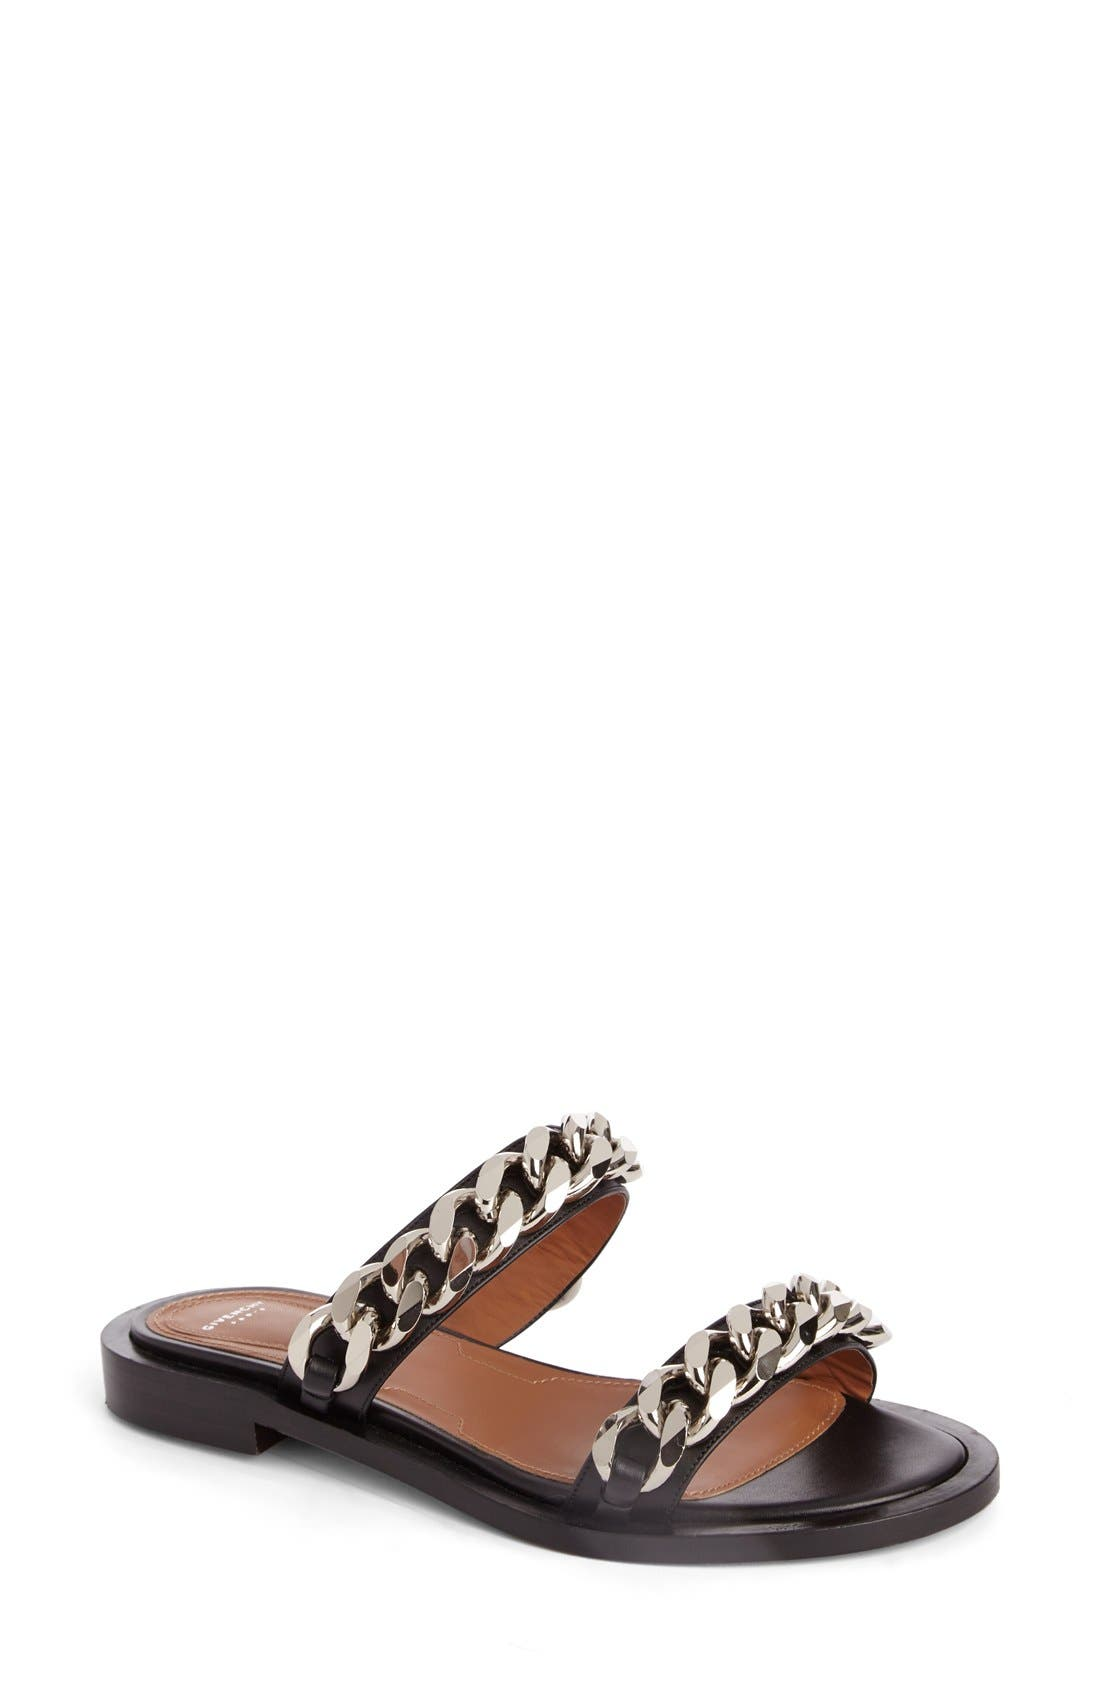 Givenchy Double Chain Slide Sandal (Women)